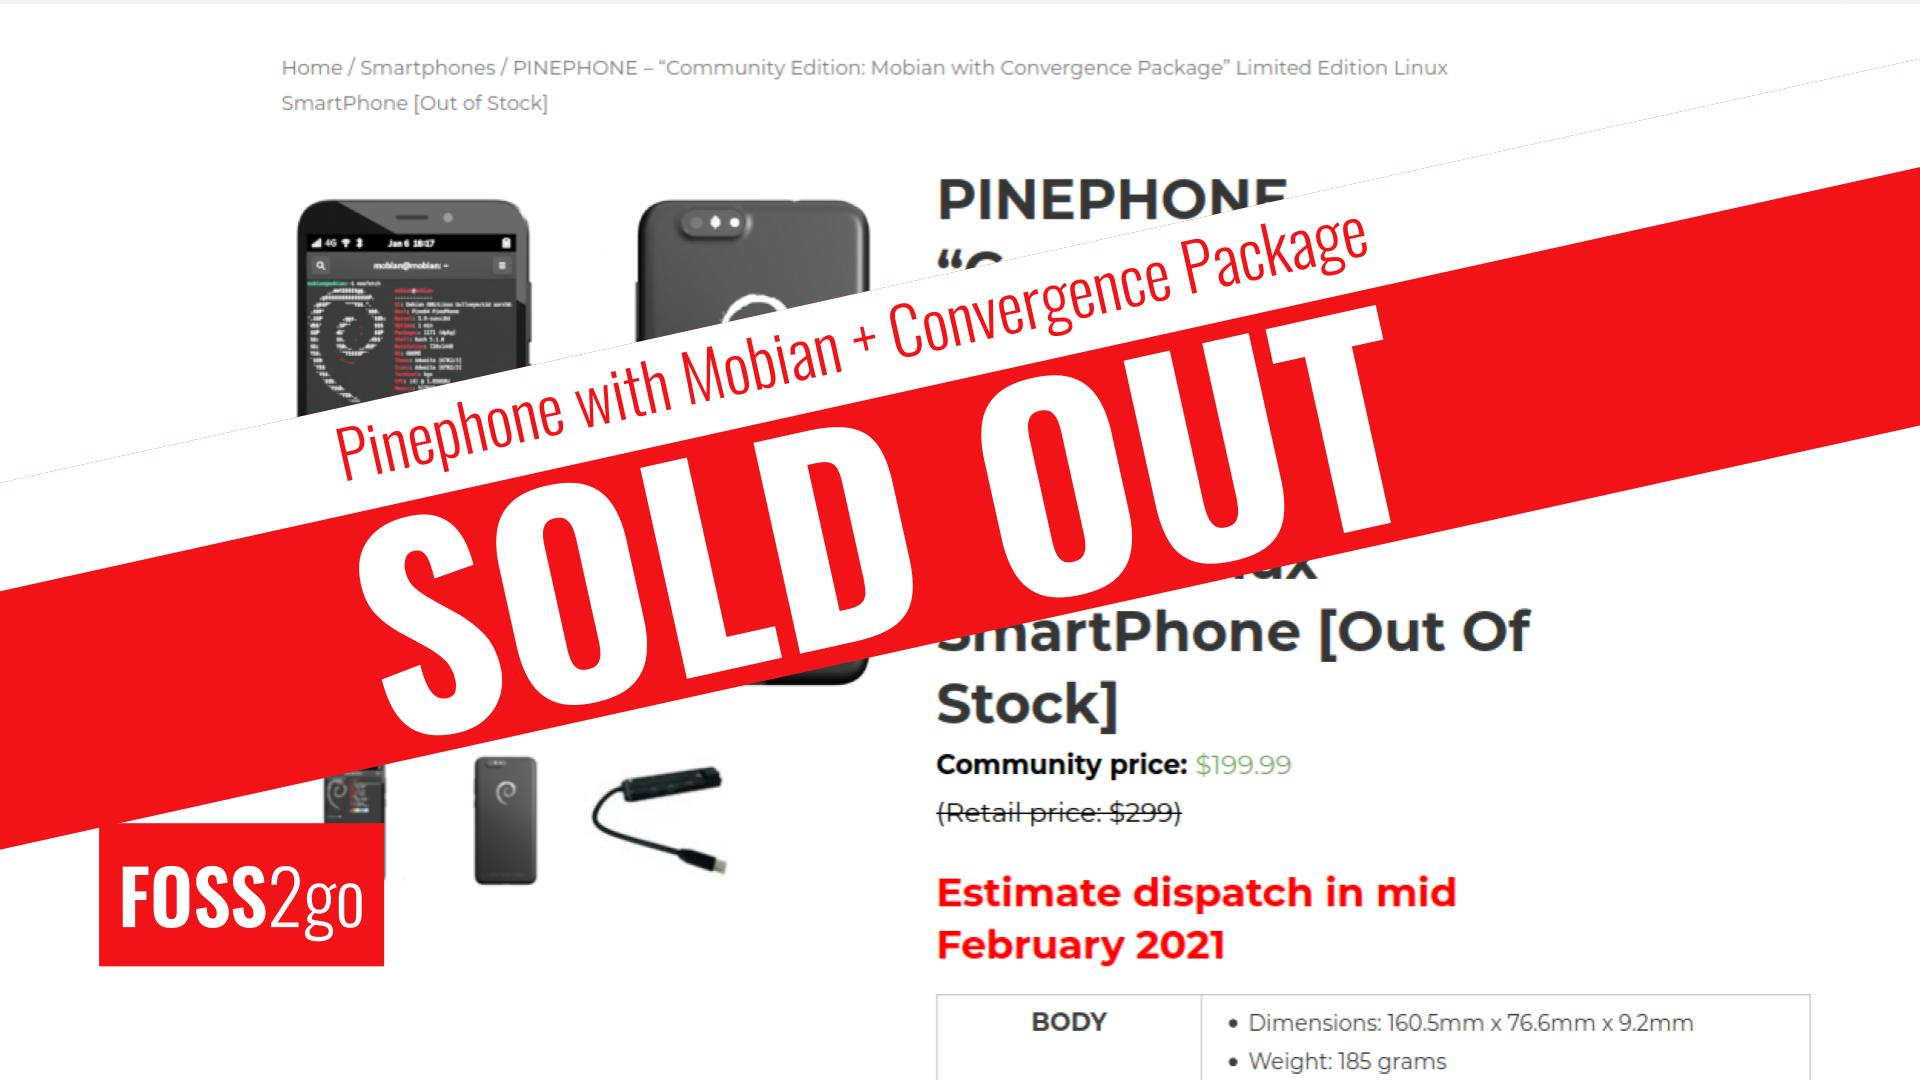 Pinephones CE Mobian with Convergence Package - SOLD OUT